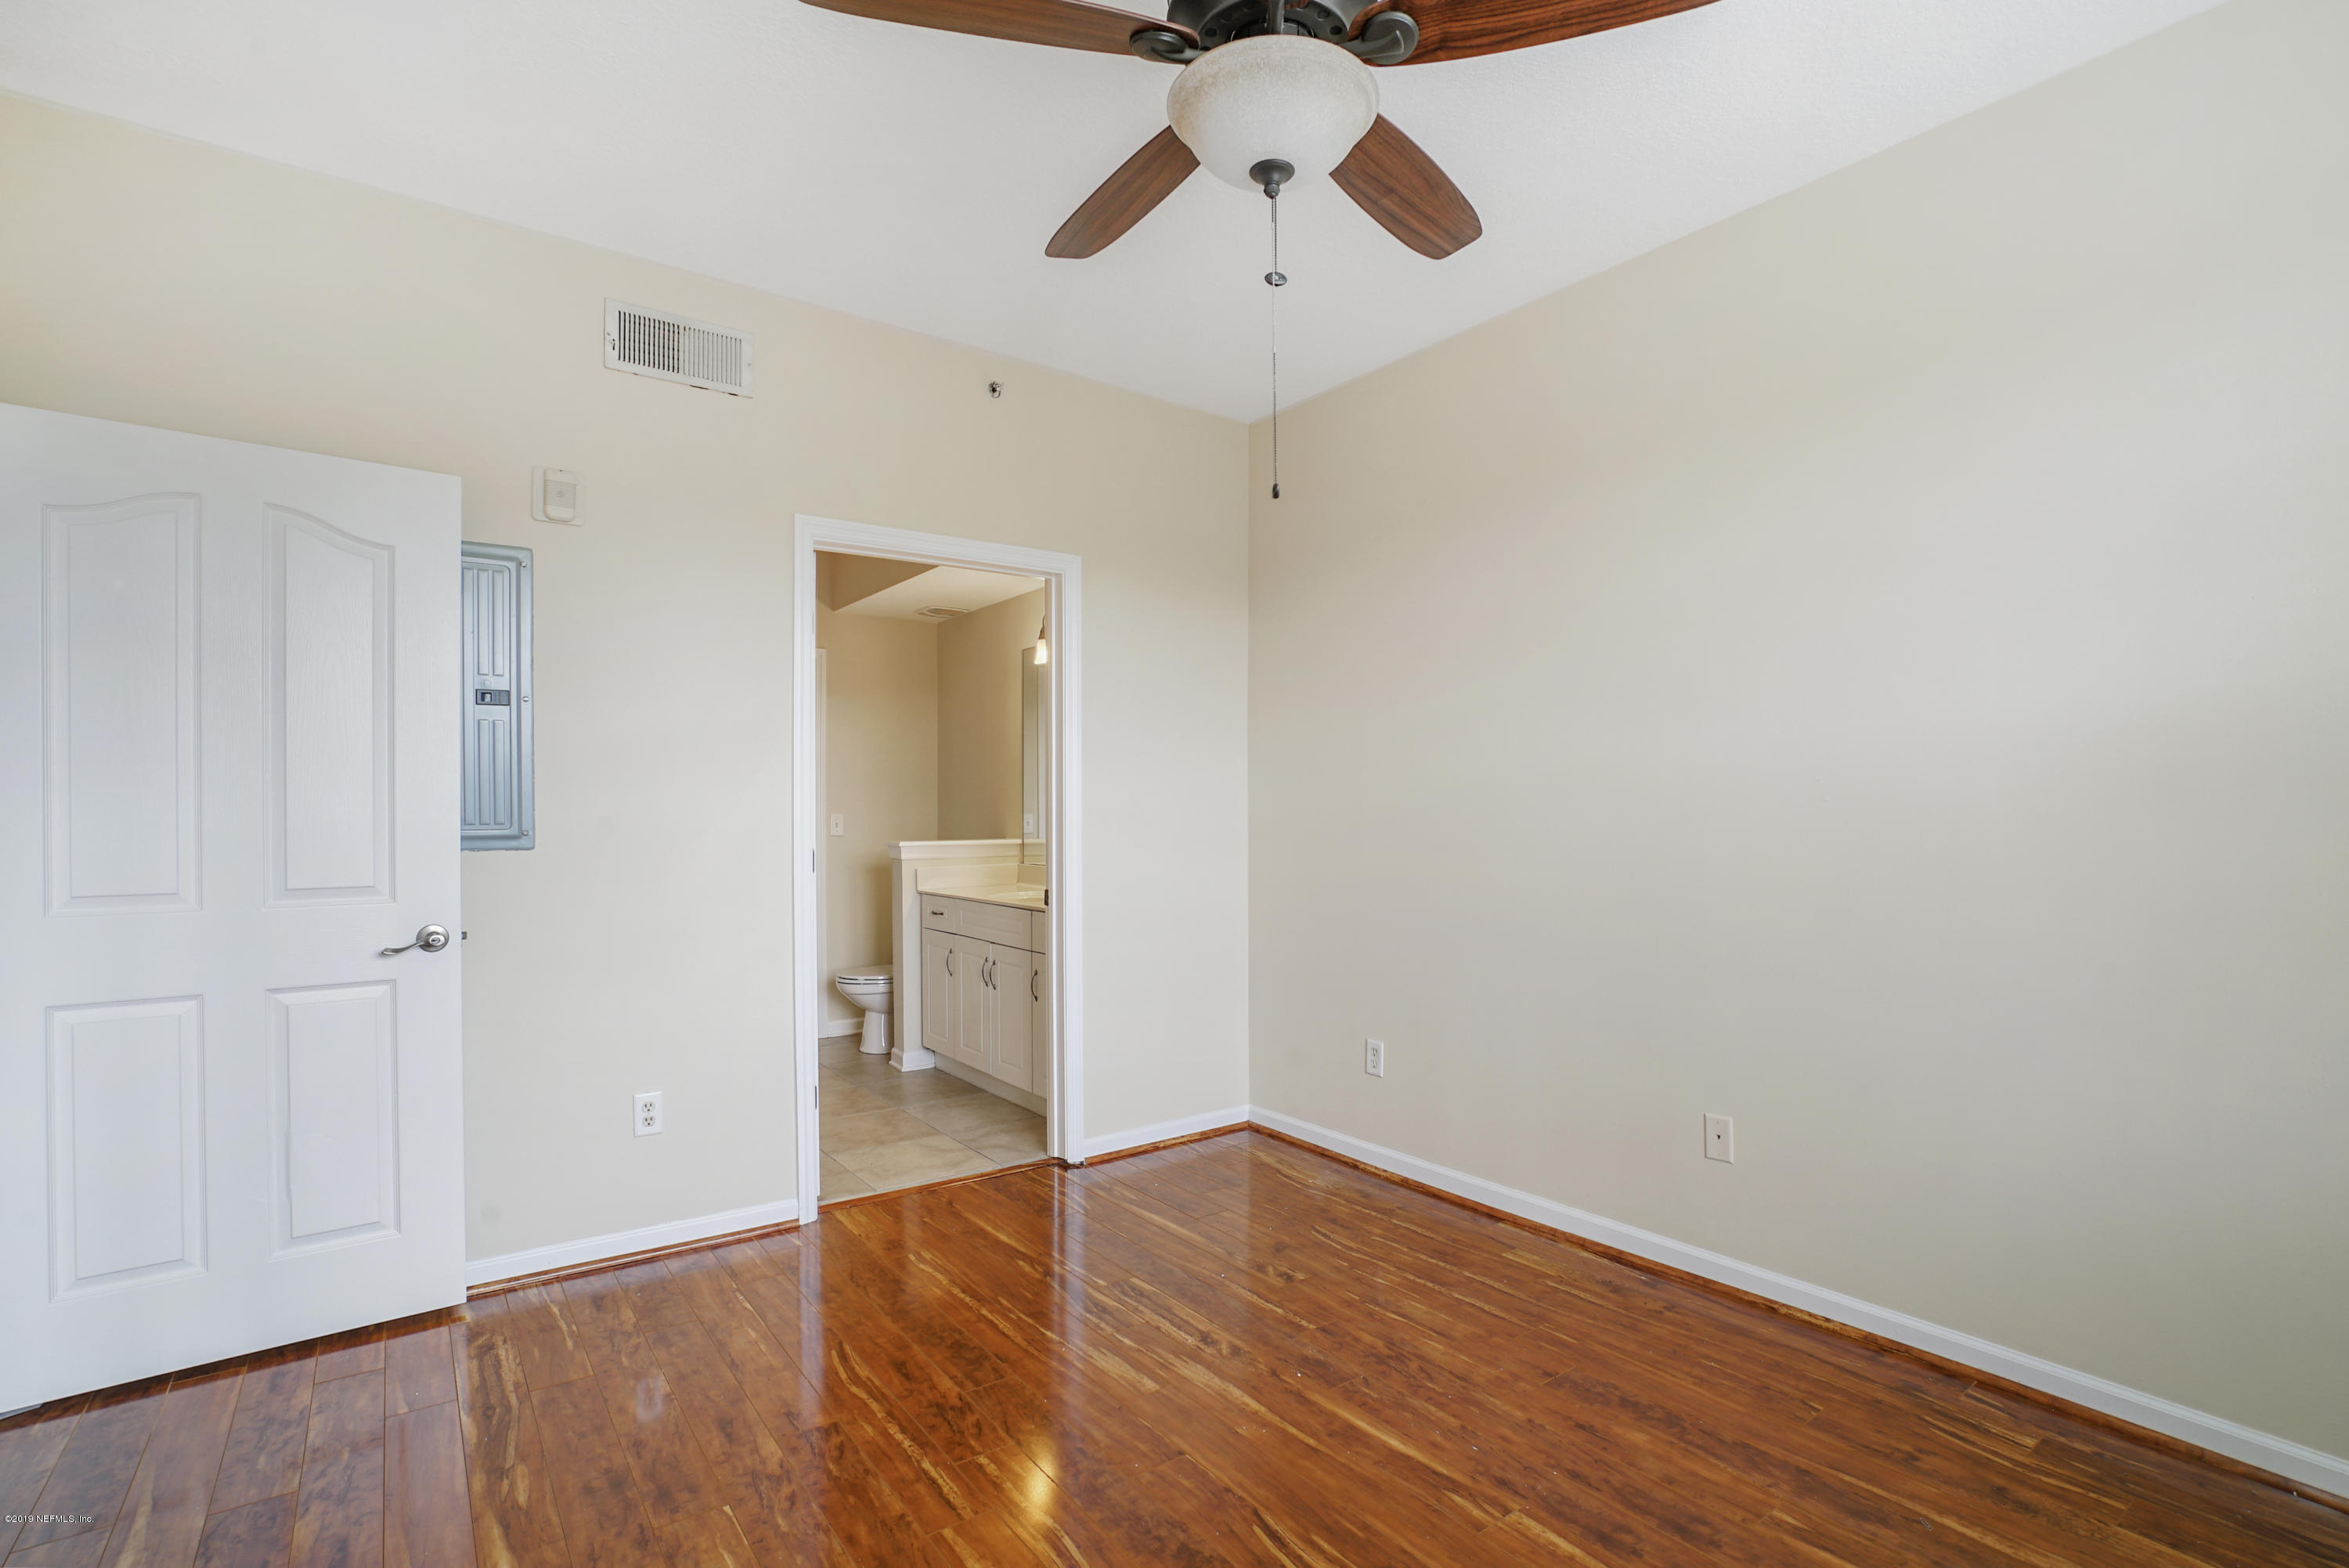 10435 MIDTOWN, JACKSONVILLE, FLORIDA 32246, 2 Bedrooms Bedrooms, ,2 BathroomsBathrooms,Condo,For sale,MIDTOWN,1018347